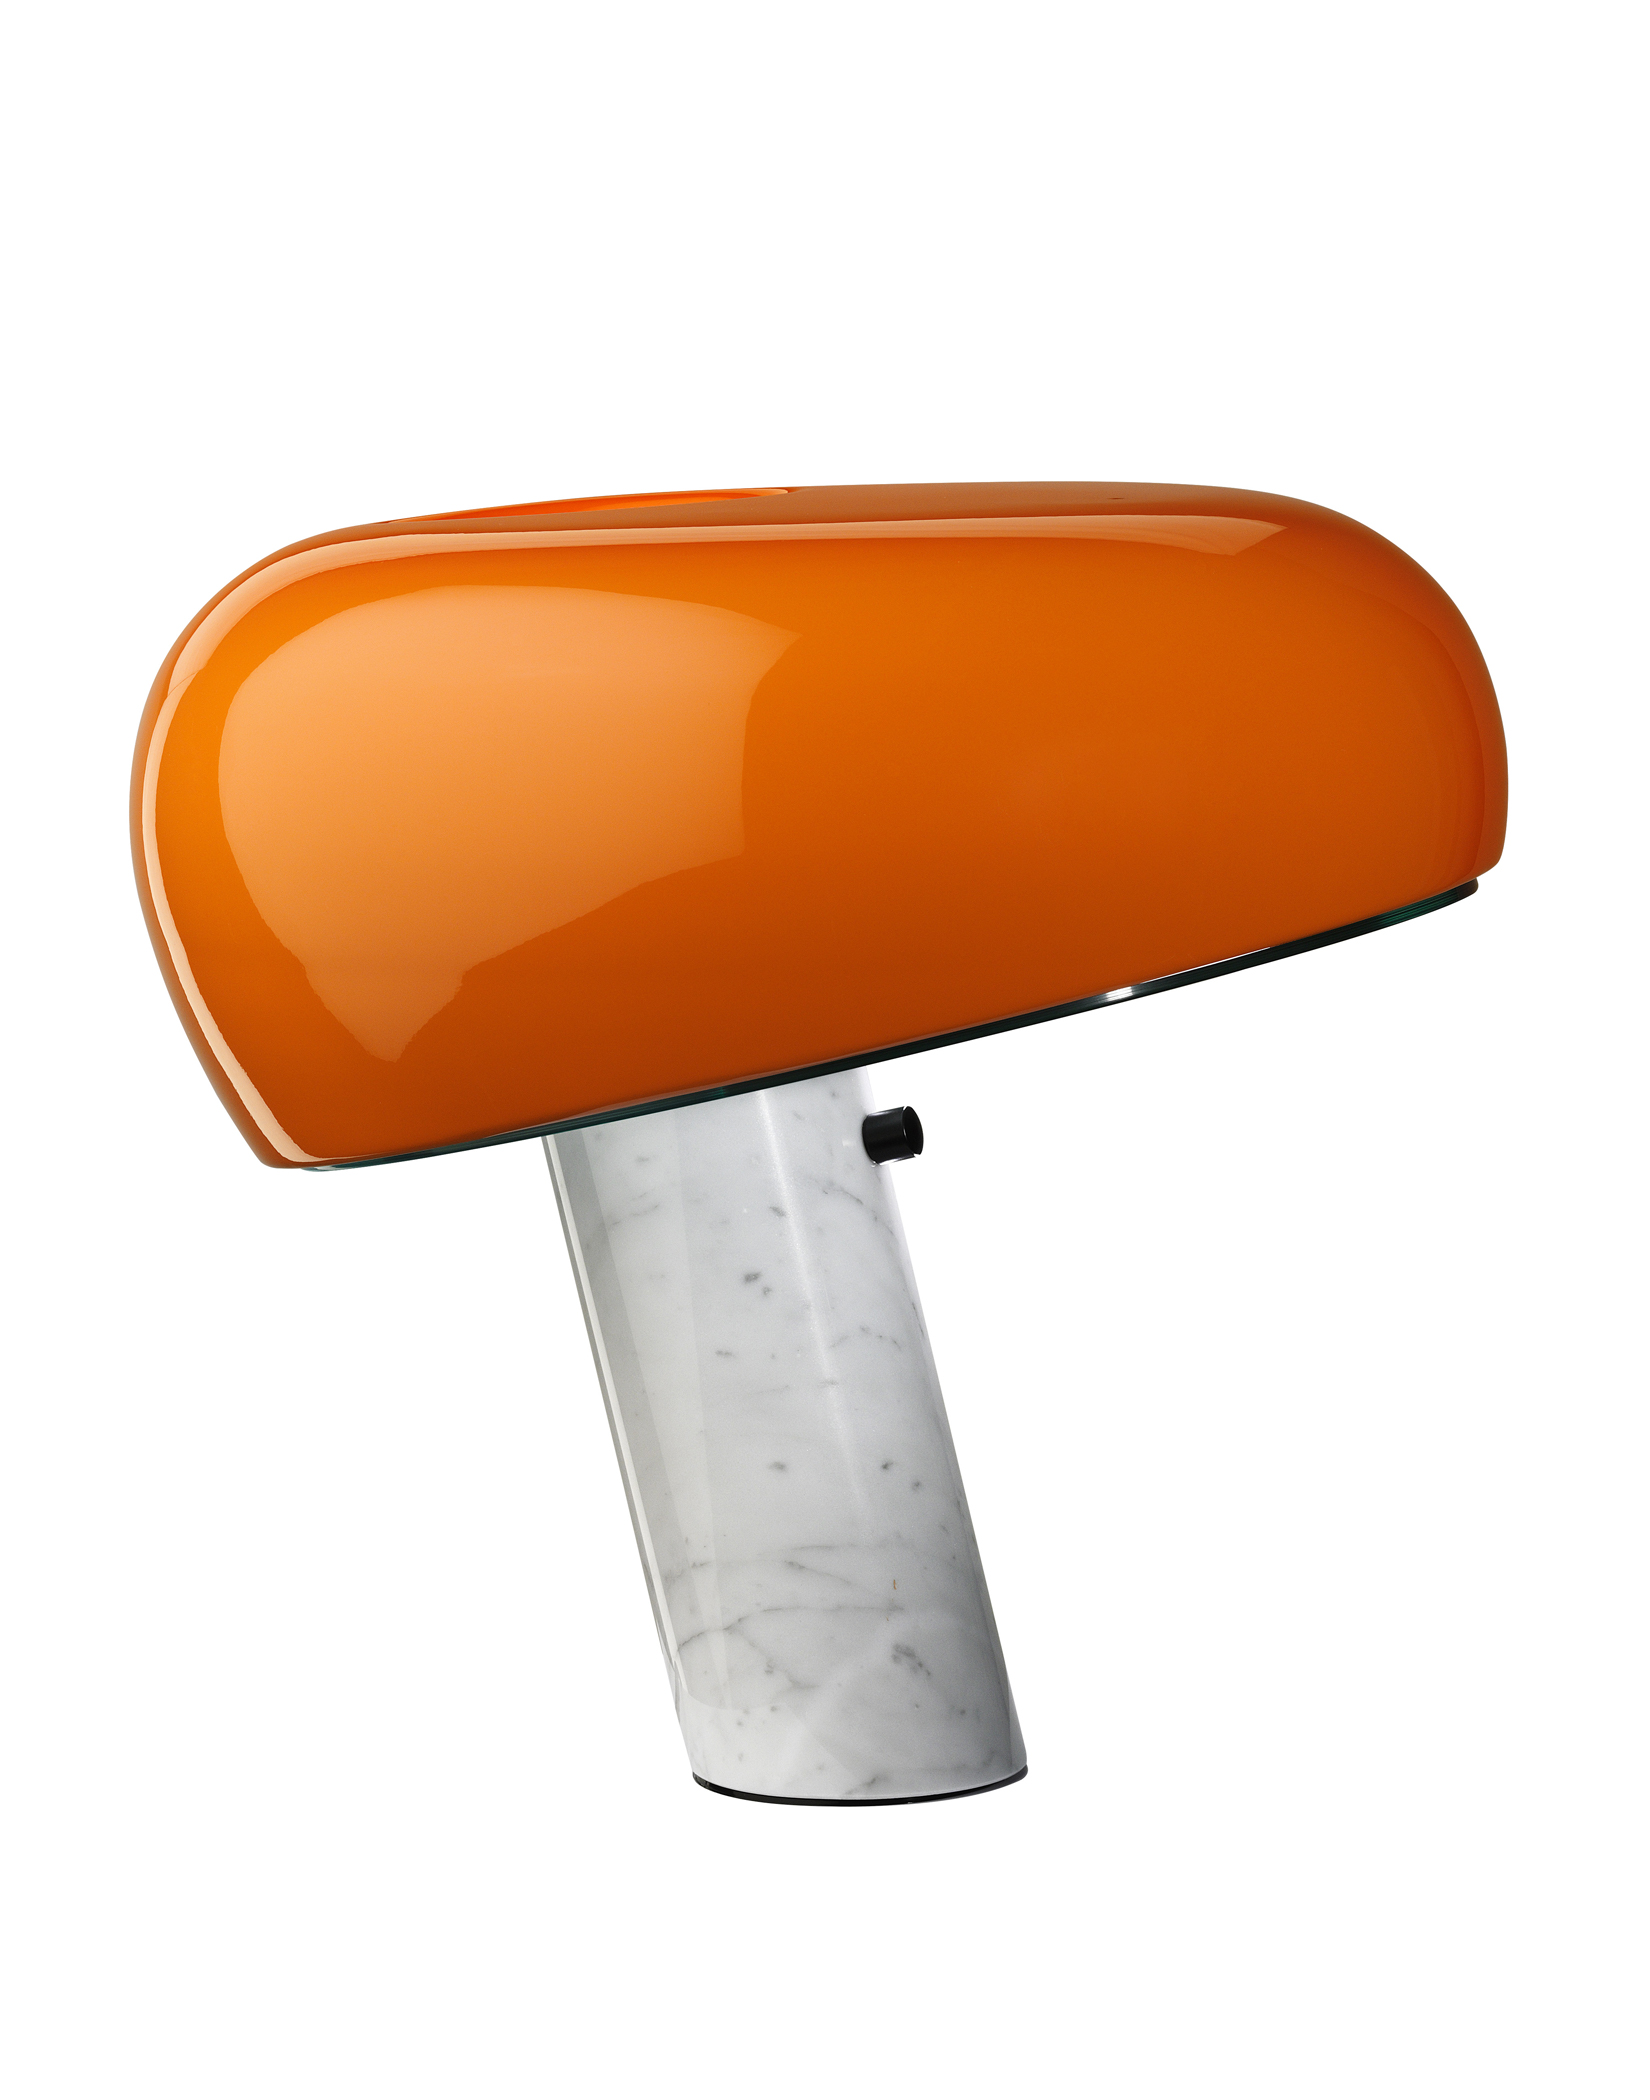 Snoopy table light by Flos